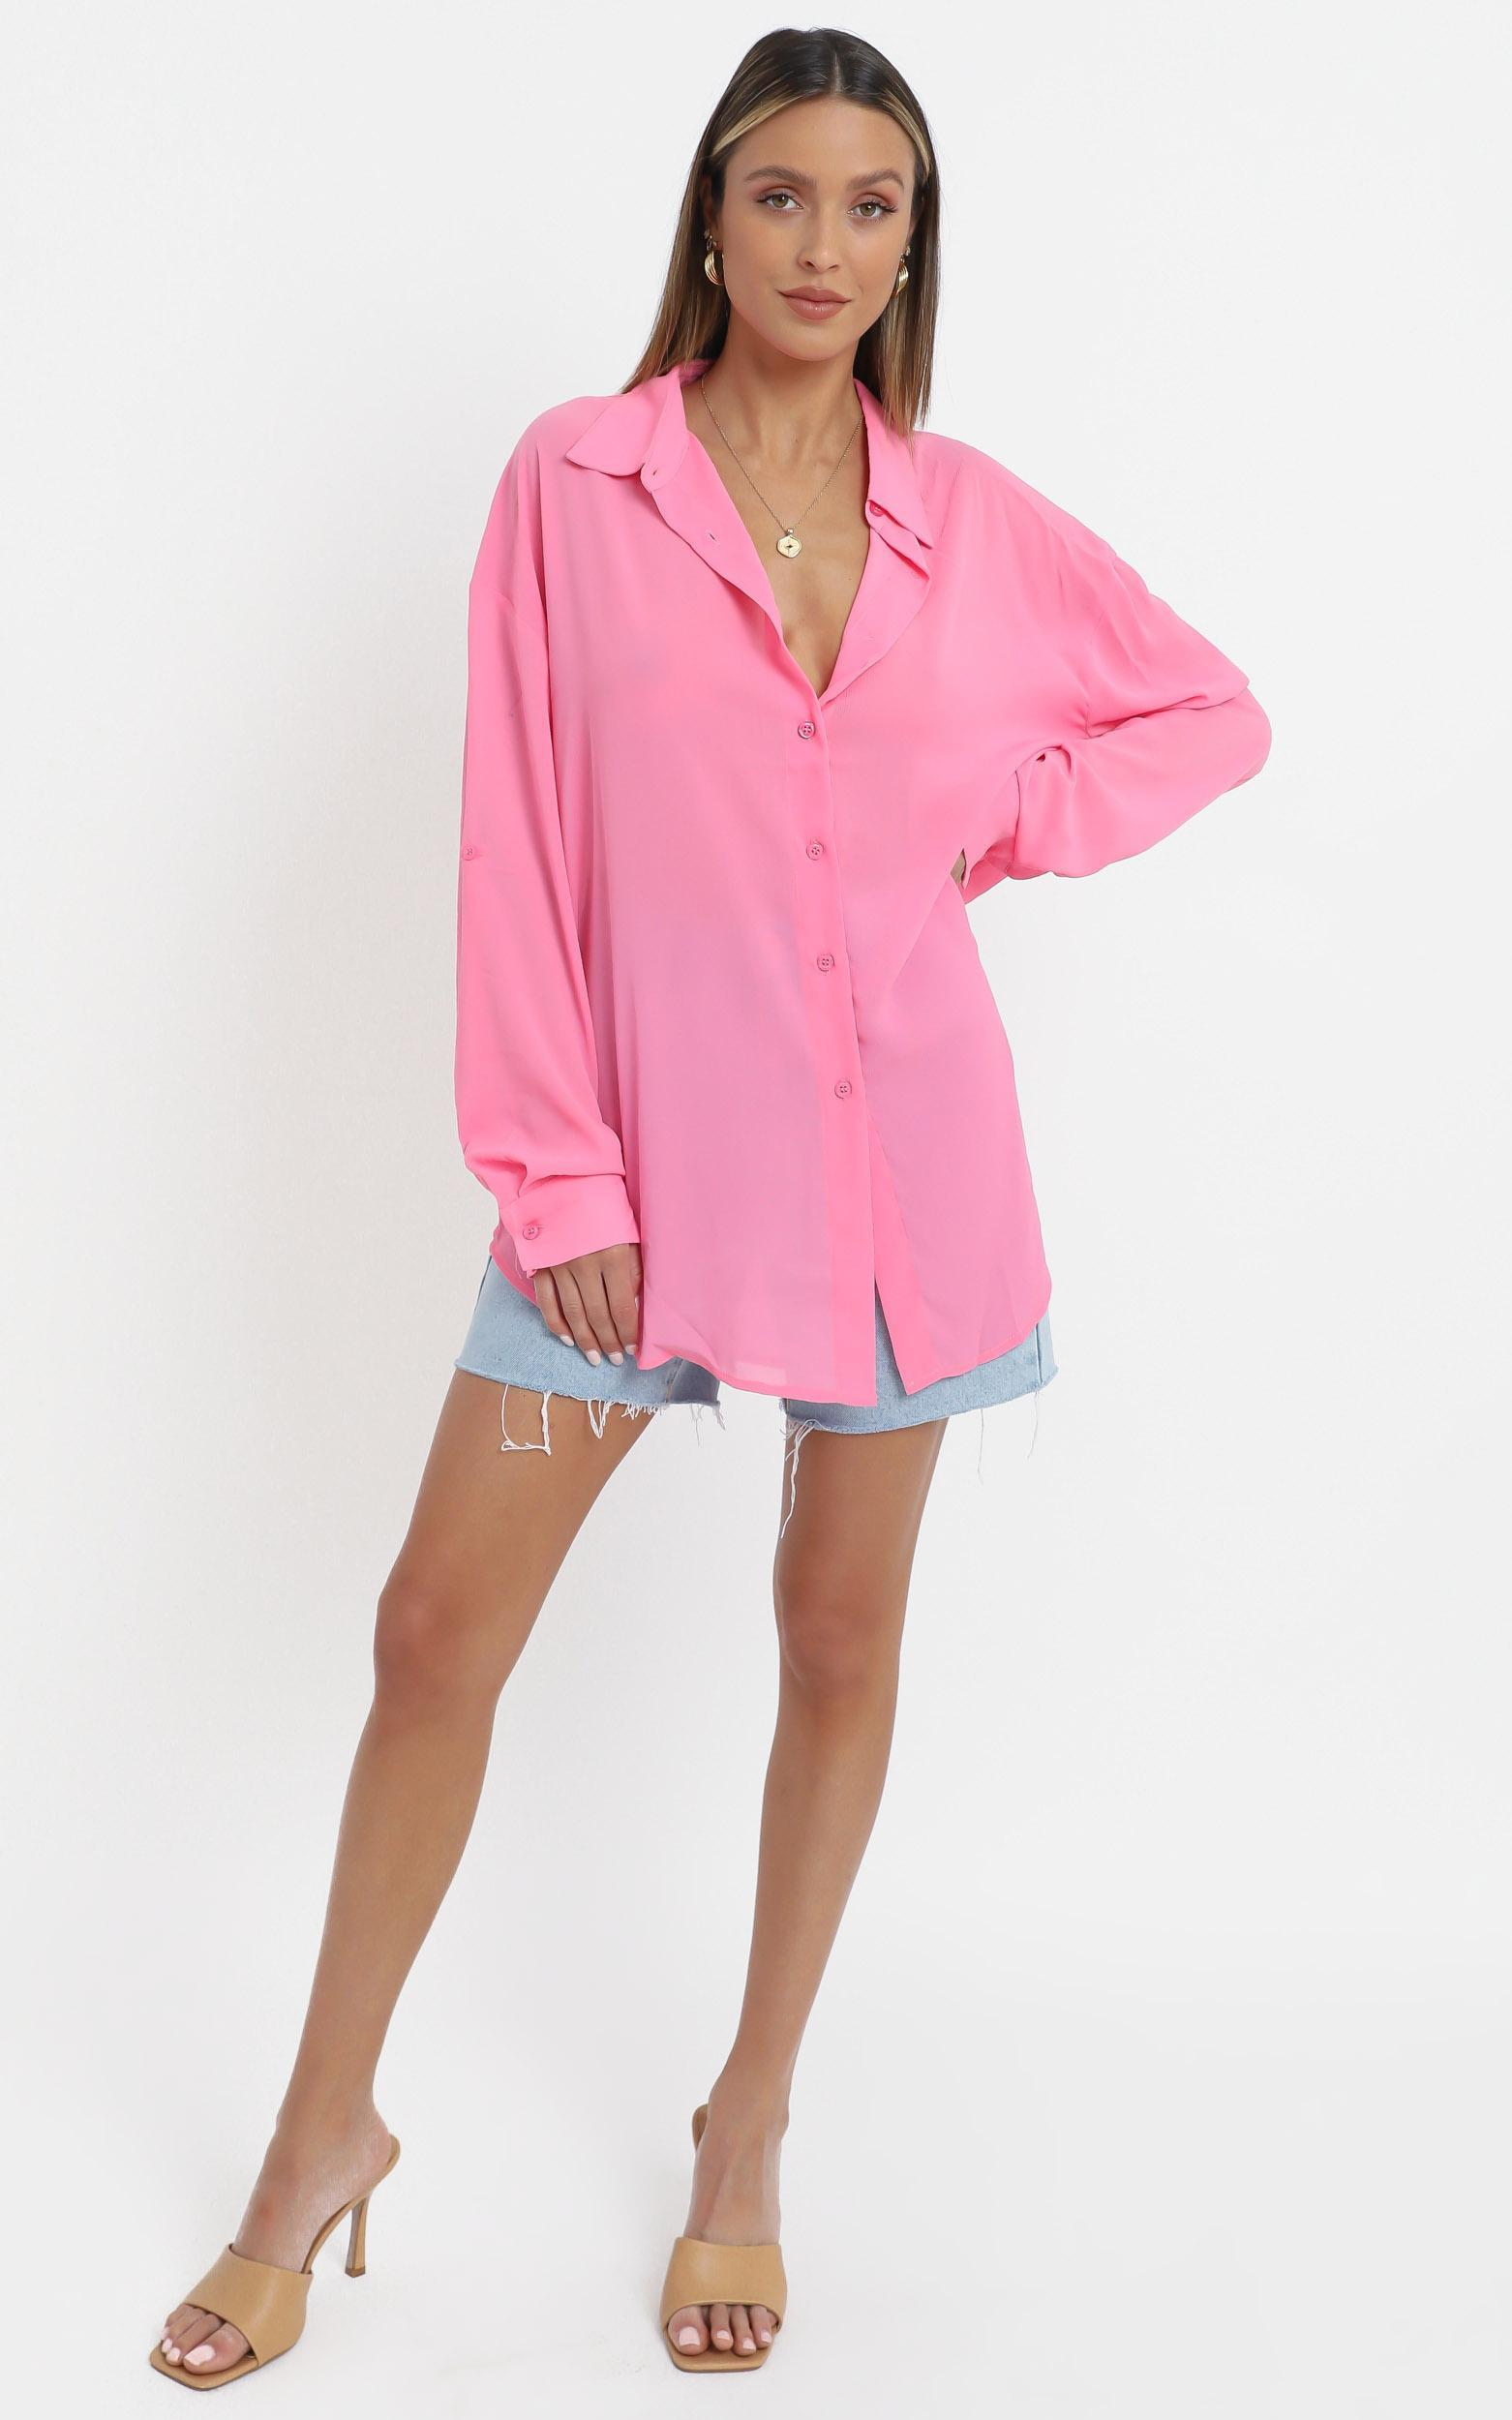 Morning Call Top in Pink - 16 (XXL), Pink, hi-res image number null